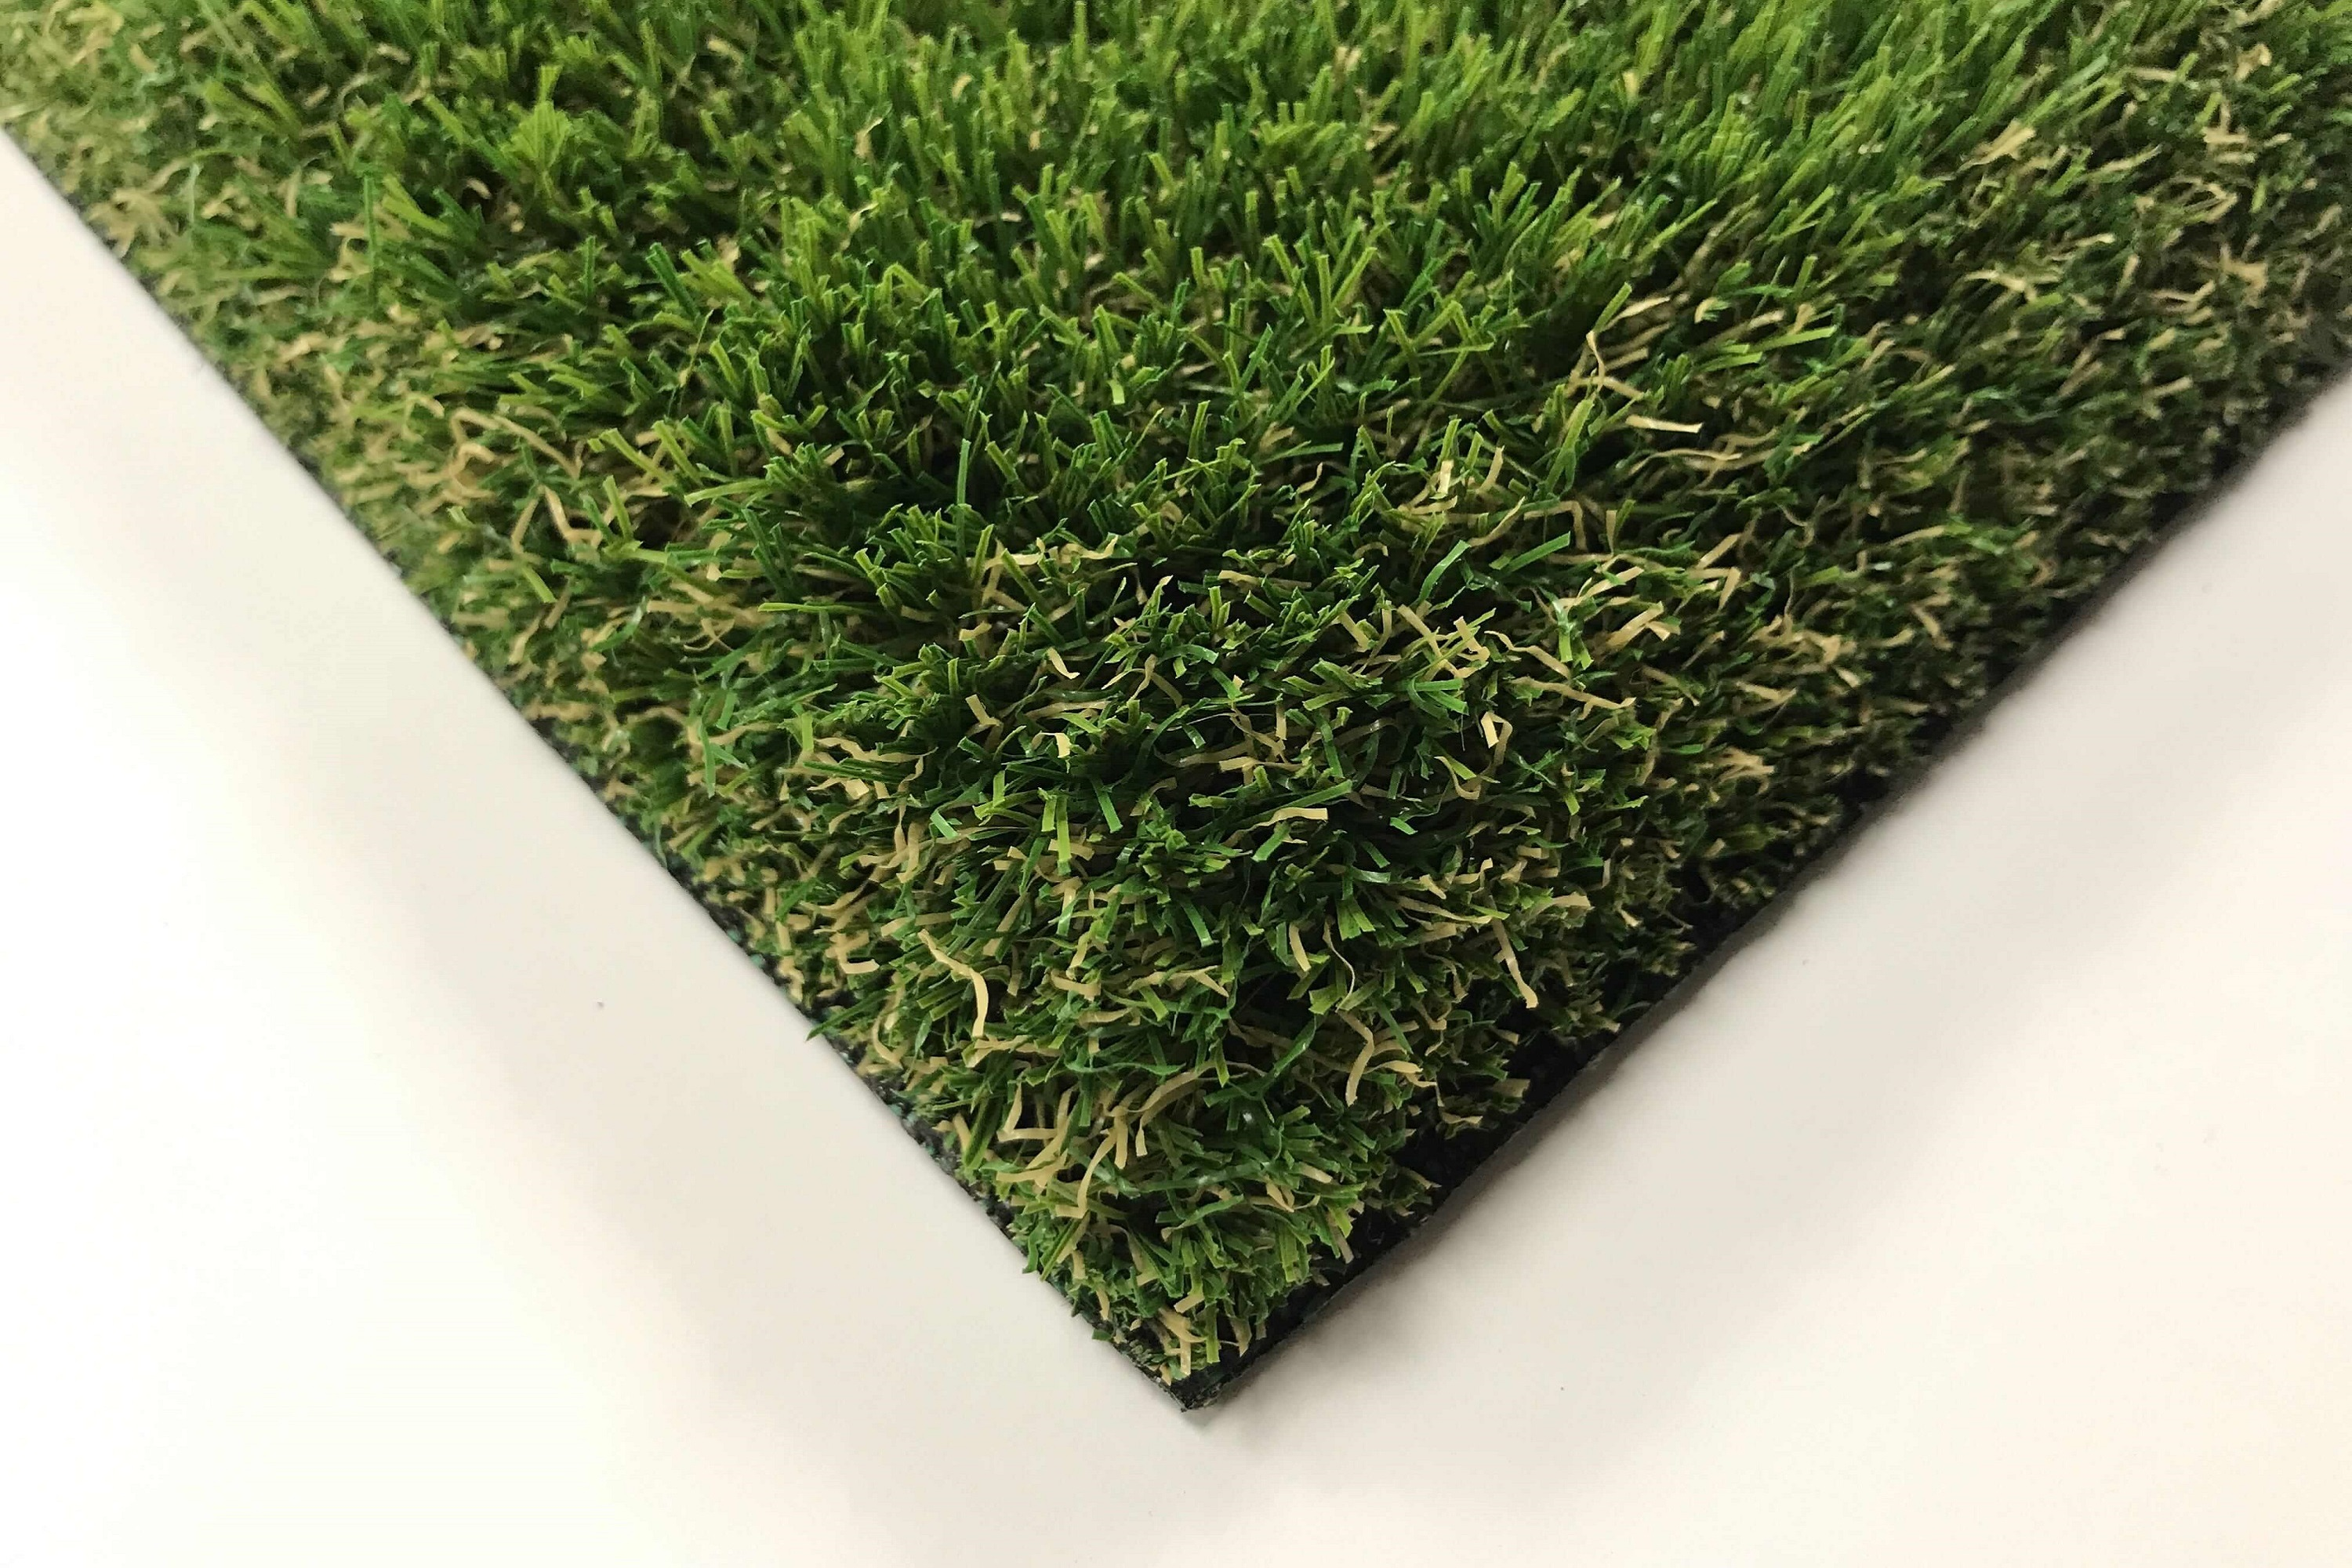 Monaco Artificial Grass